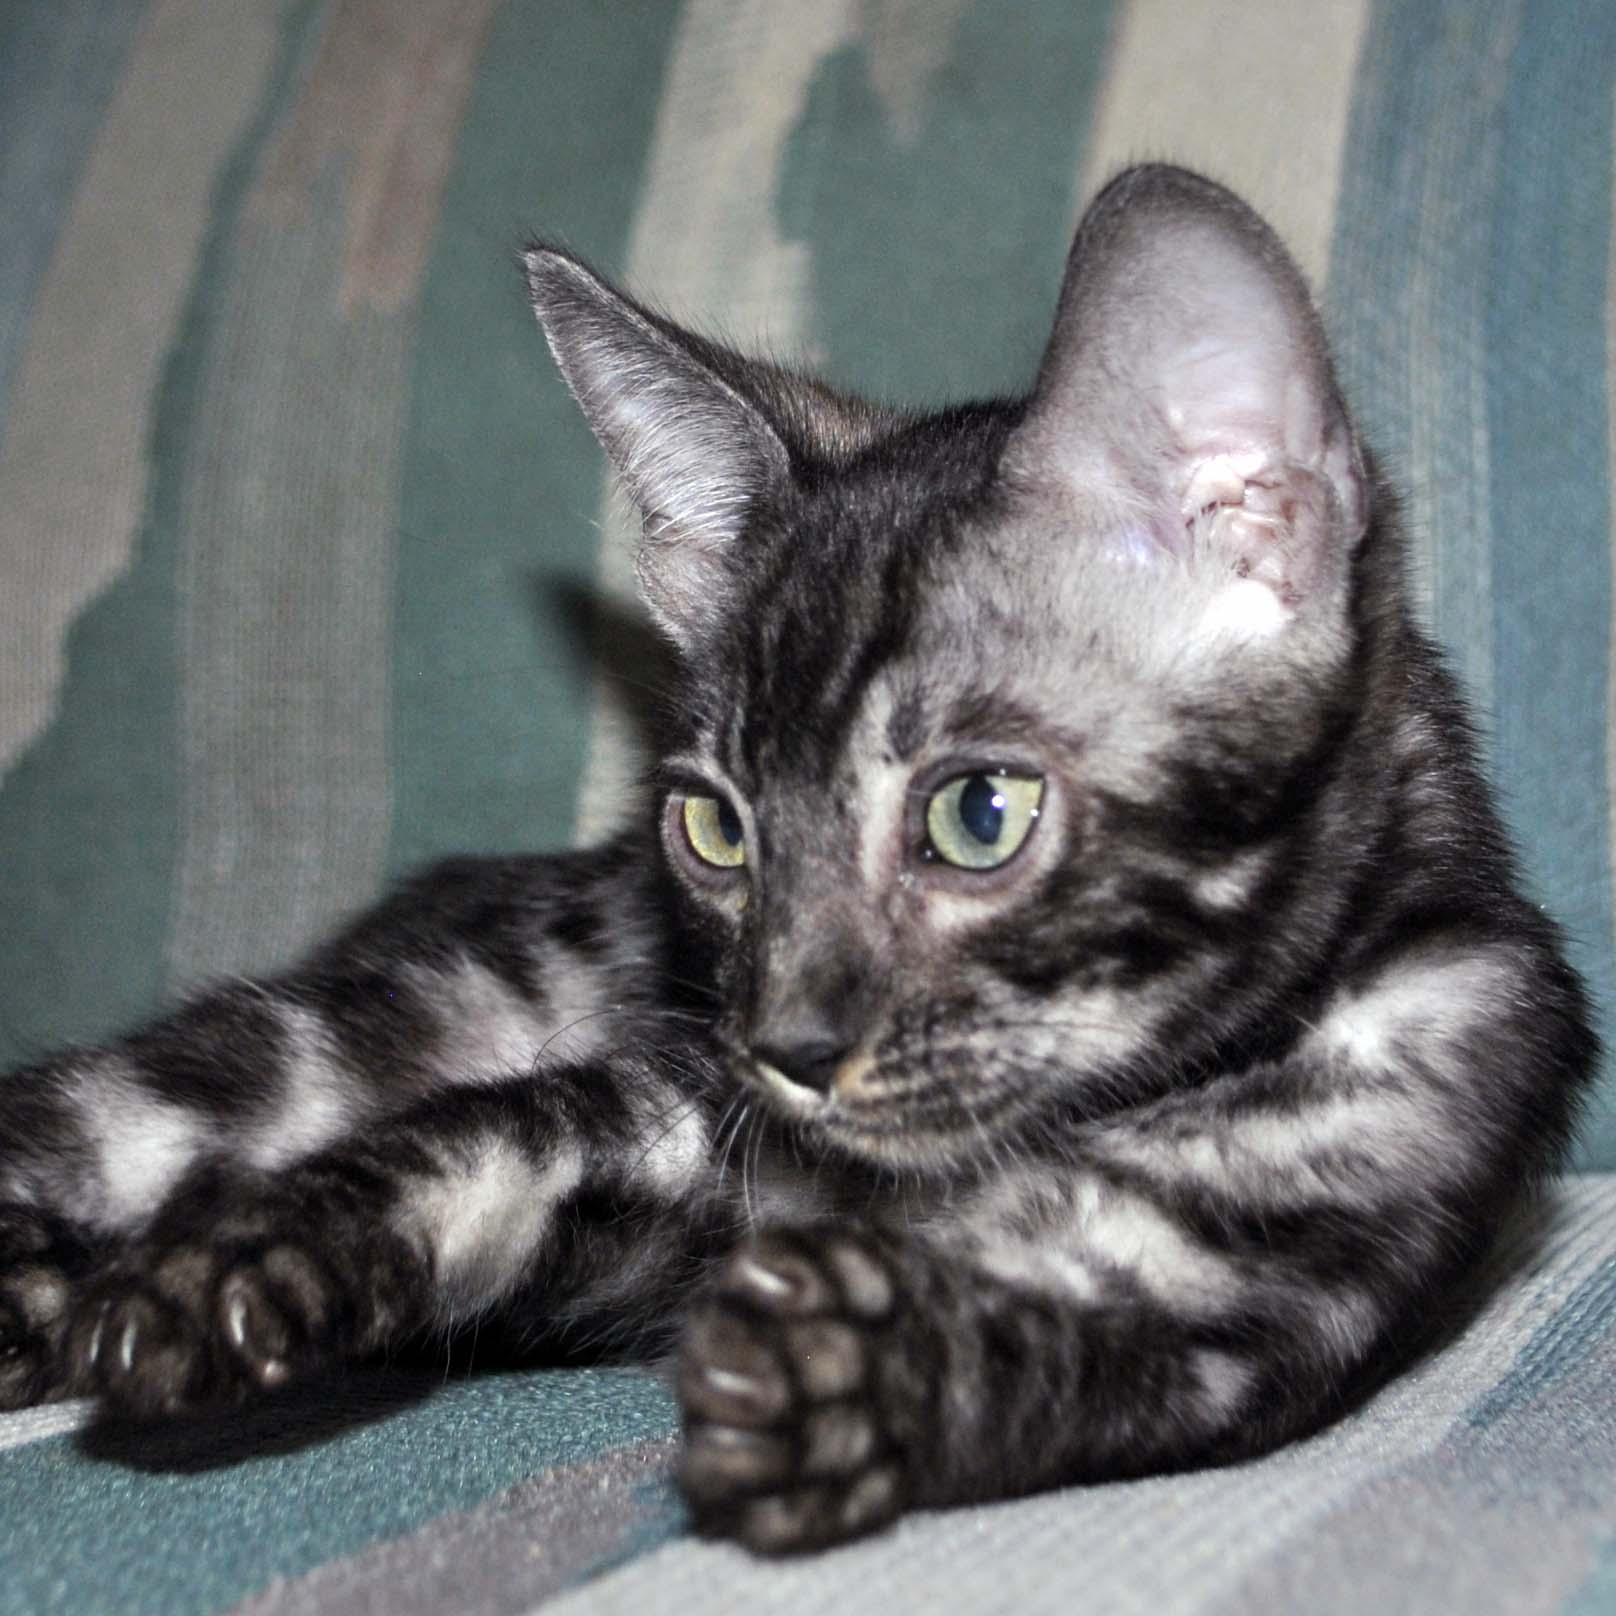 Silver Bengal kittens for sale, Bengal cattery Cataristocrat